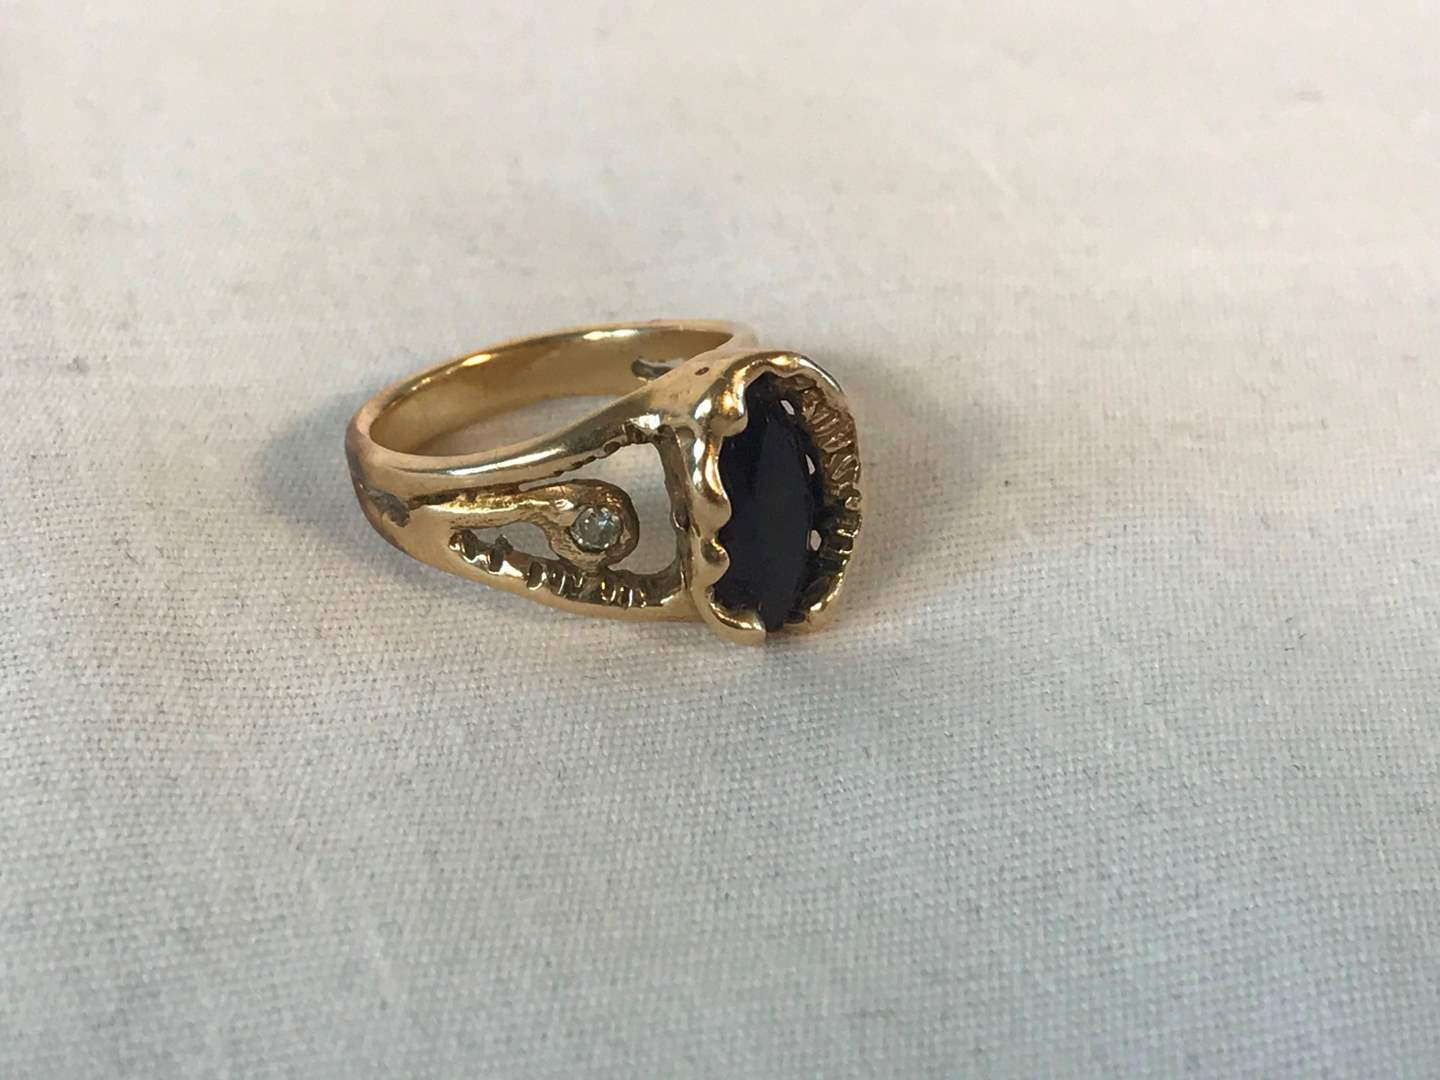 Lot # 228 - Antique 14k Gold Ring w/ Small Diamonds & Precious Stone - 6.30 grams (Tested). (main image)